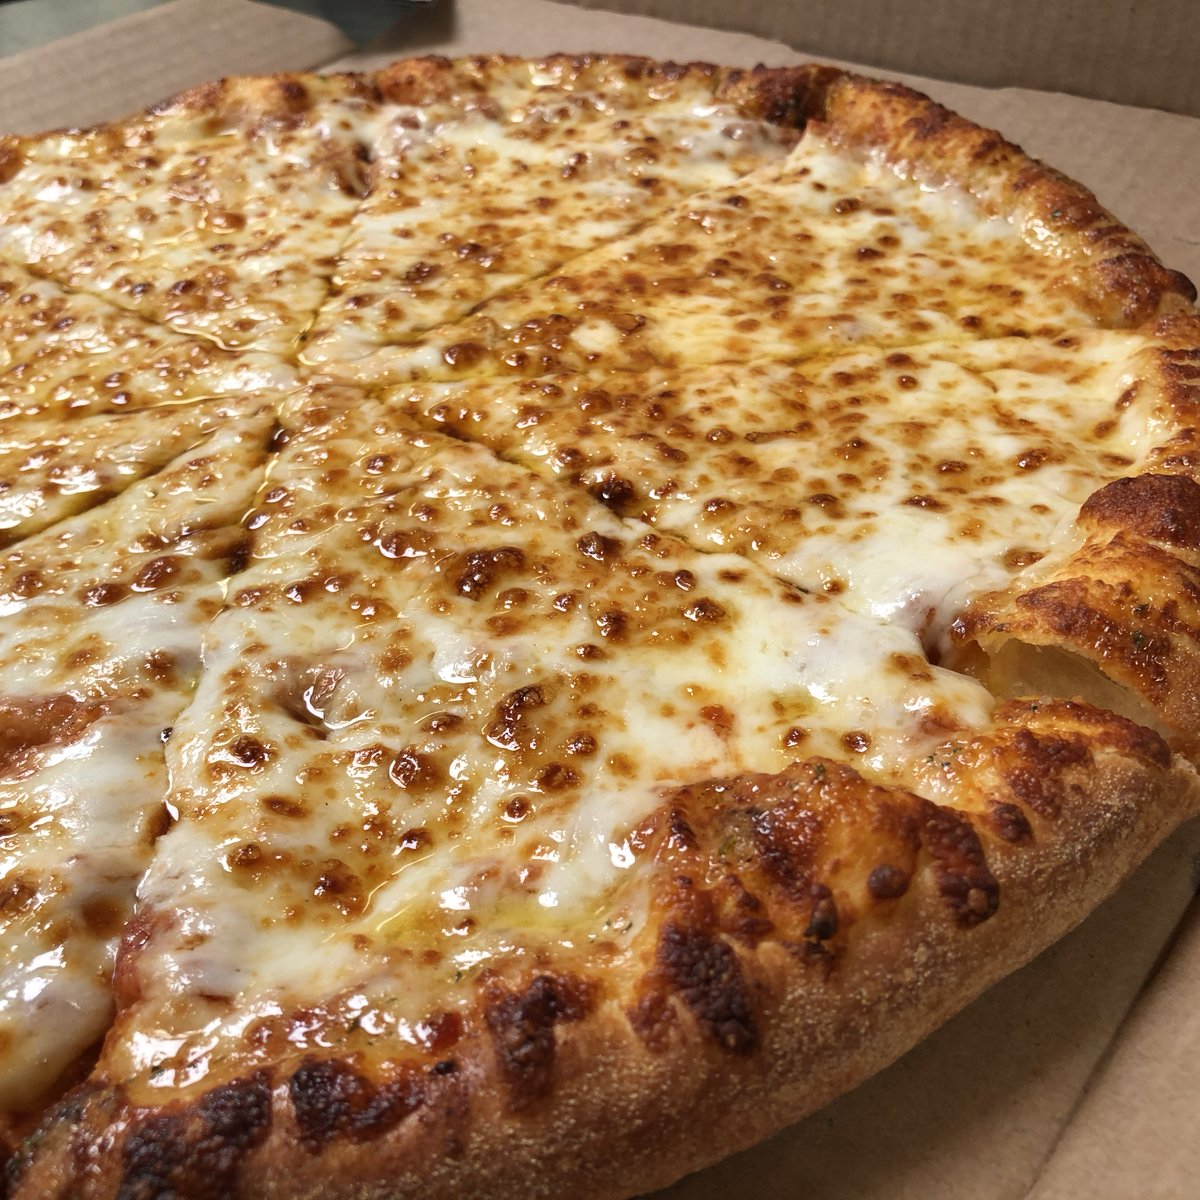 Domino 39 s pizza on twitter ordering this in 3 2 1 - Dominos pizza paterna ...